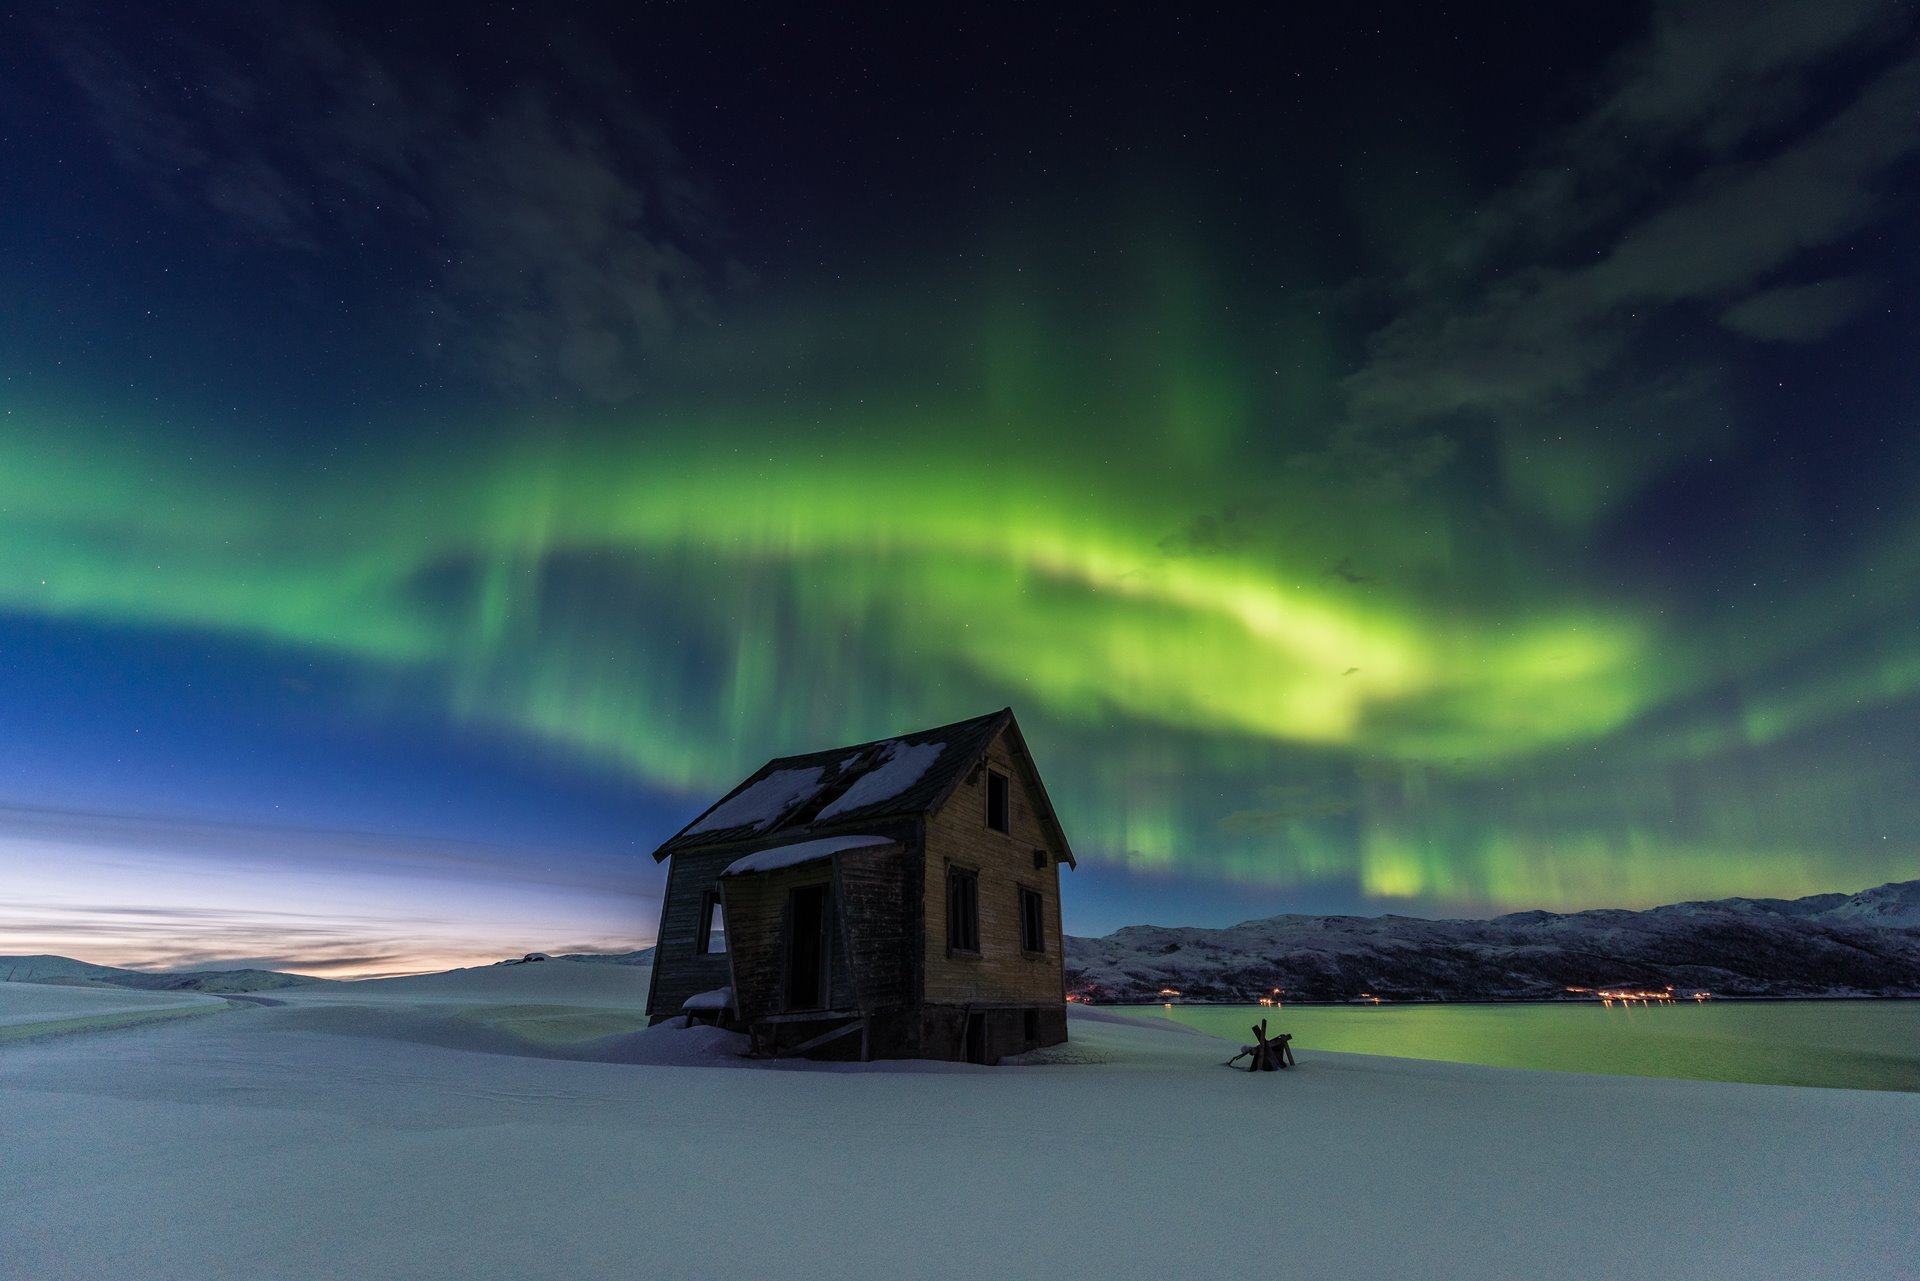 Taking a trip to see the Northern Lights in Norway